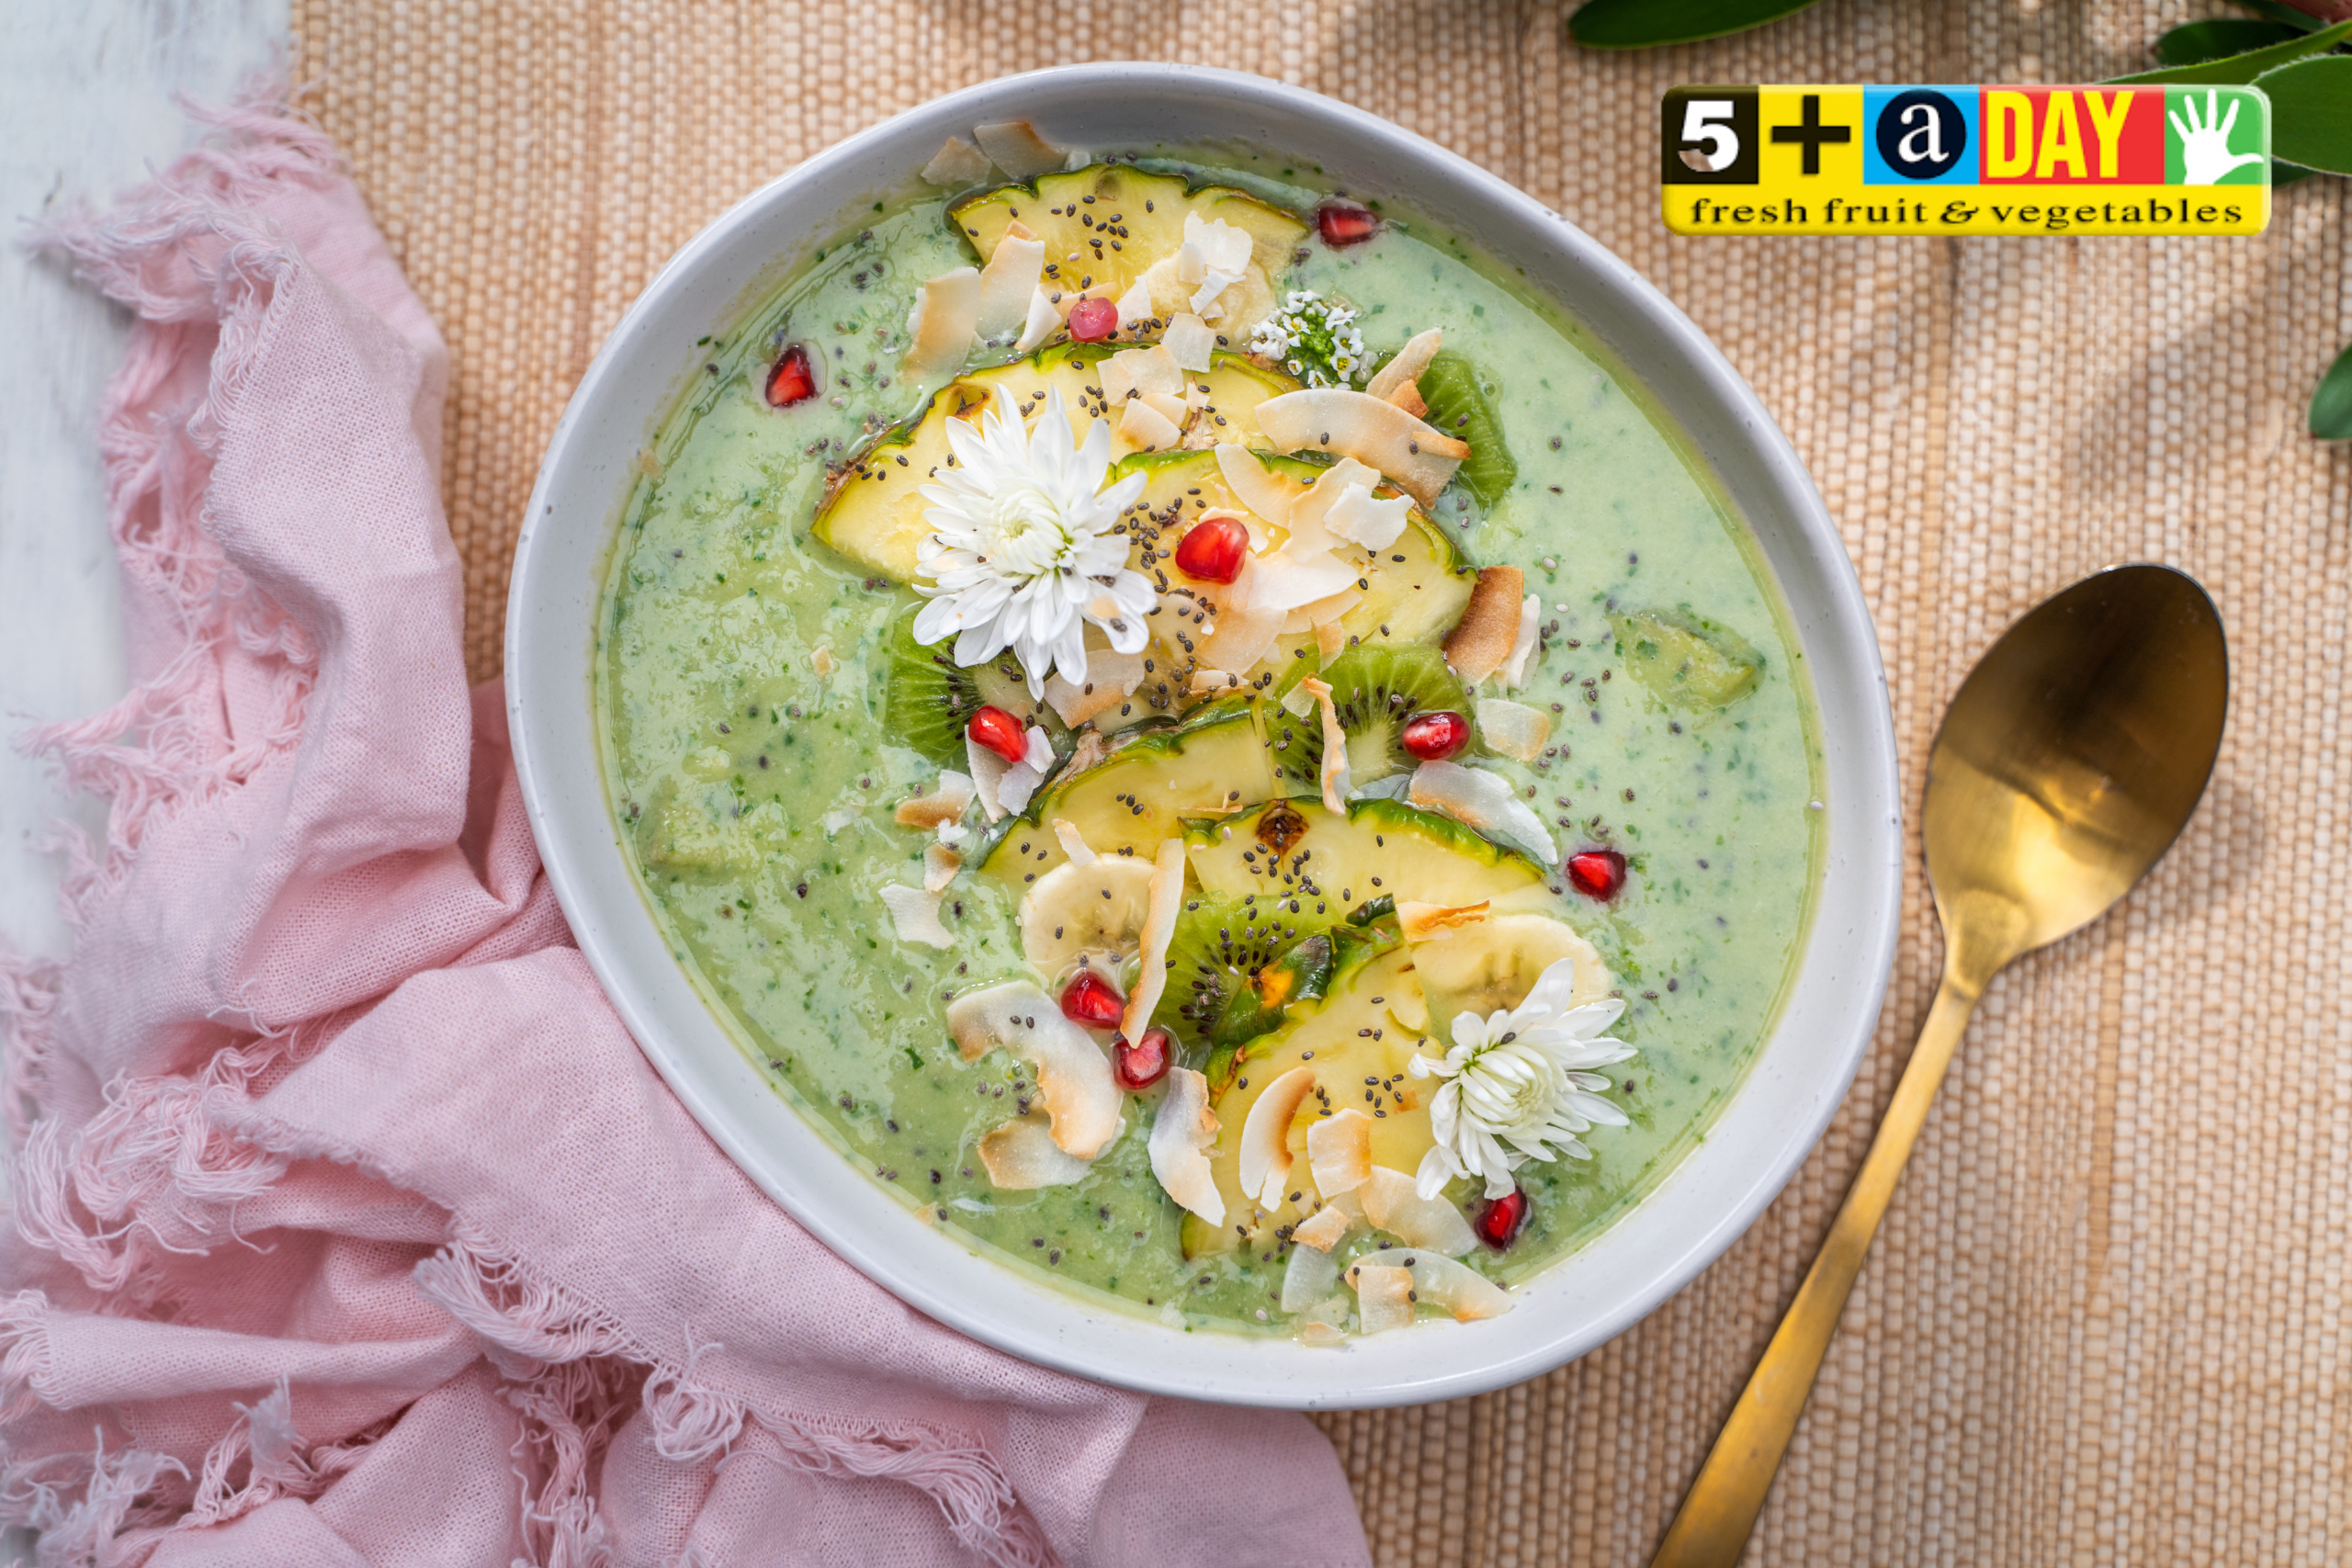 Kiwifruit and spinach smoothie topped with pineapple, kiwifruit, coconut and flowers in a bowl with golden spoon and pink cloth